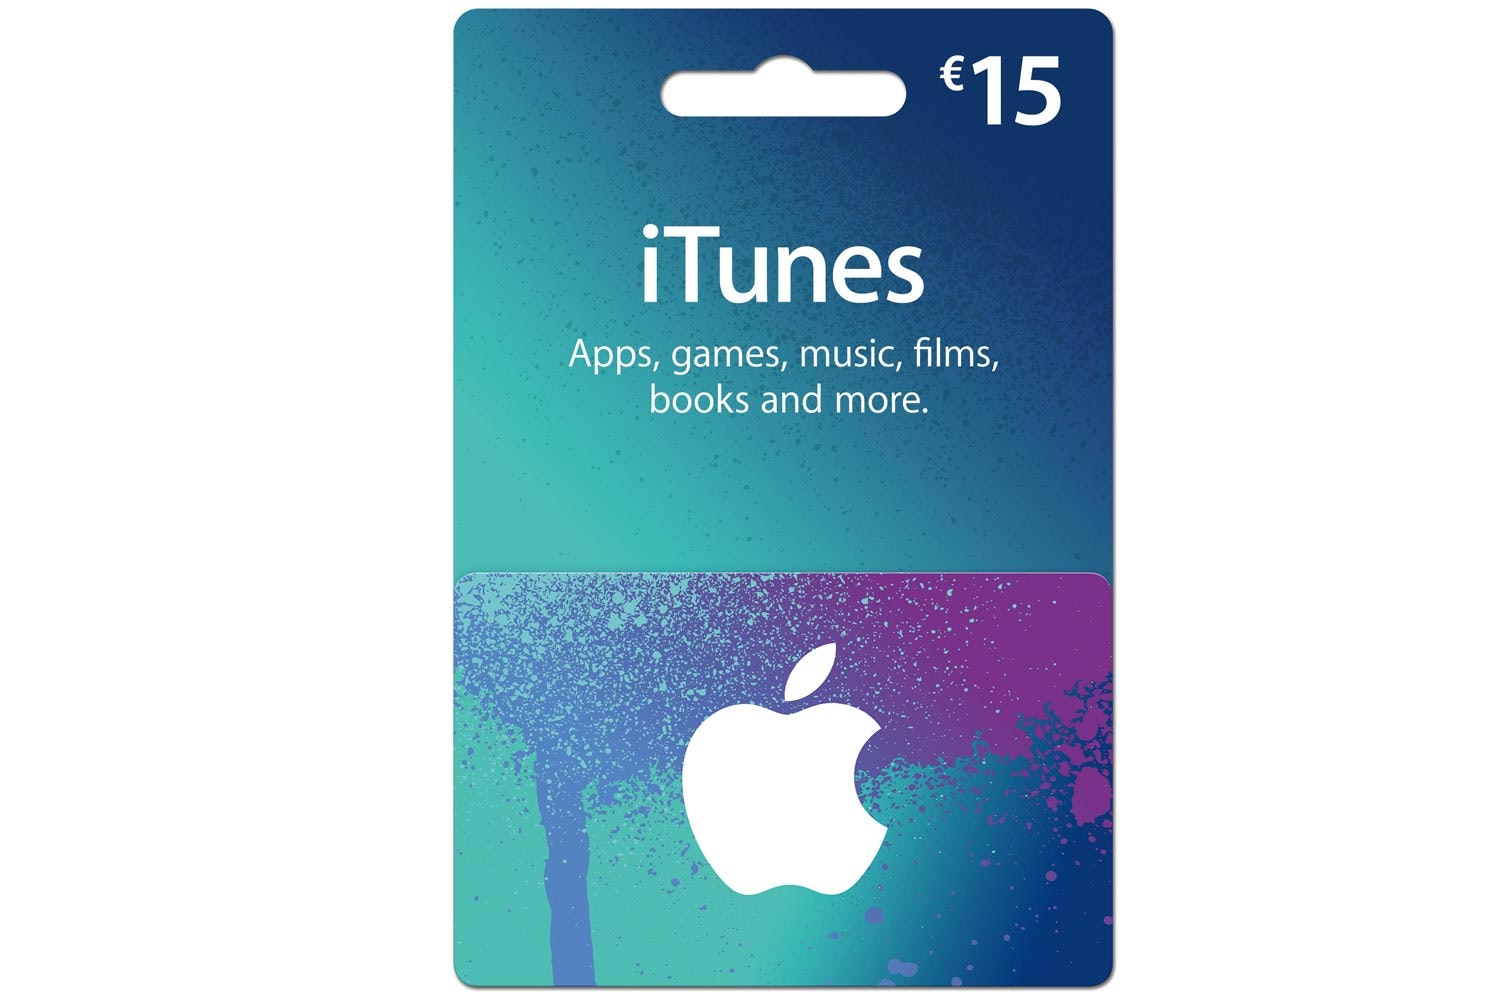 €15 iTunes Gift Card